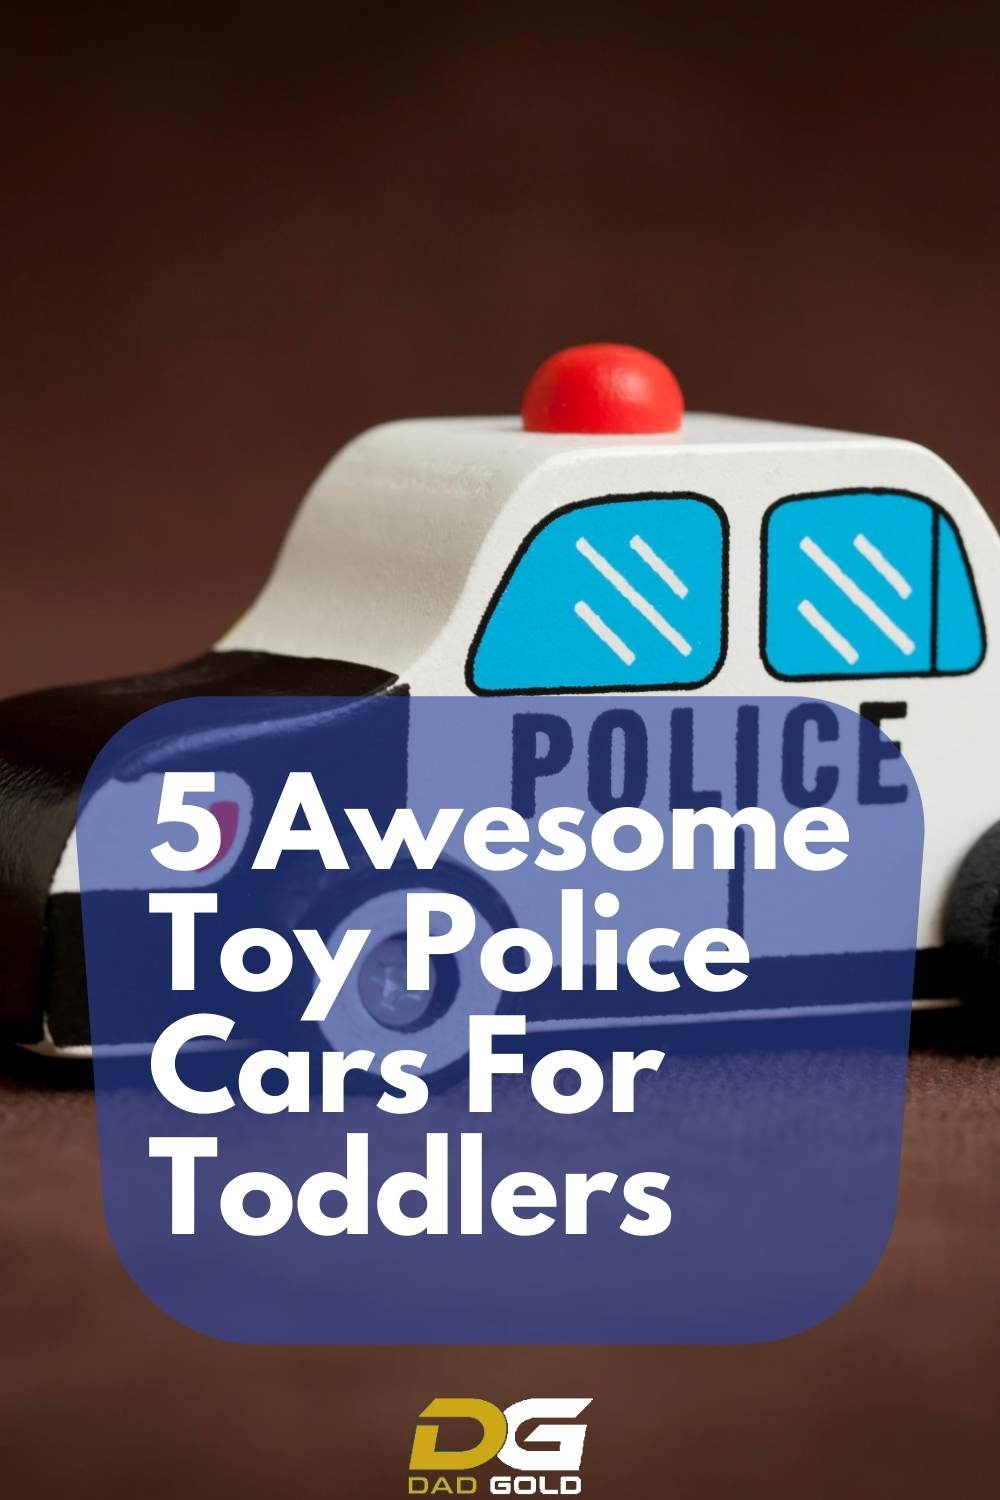 5 Awesome Toy Police Cars For Toddlers (1)